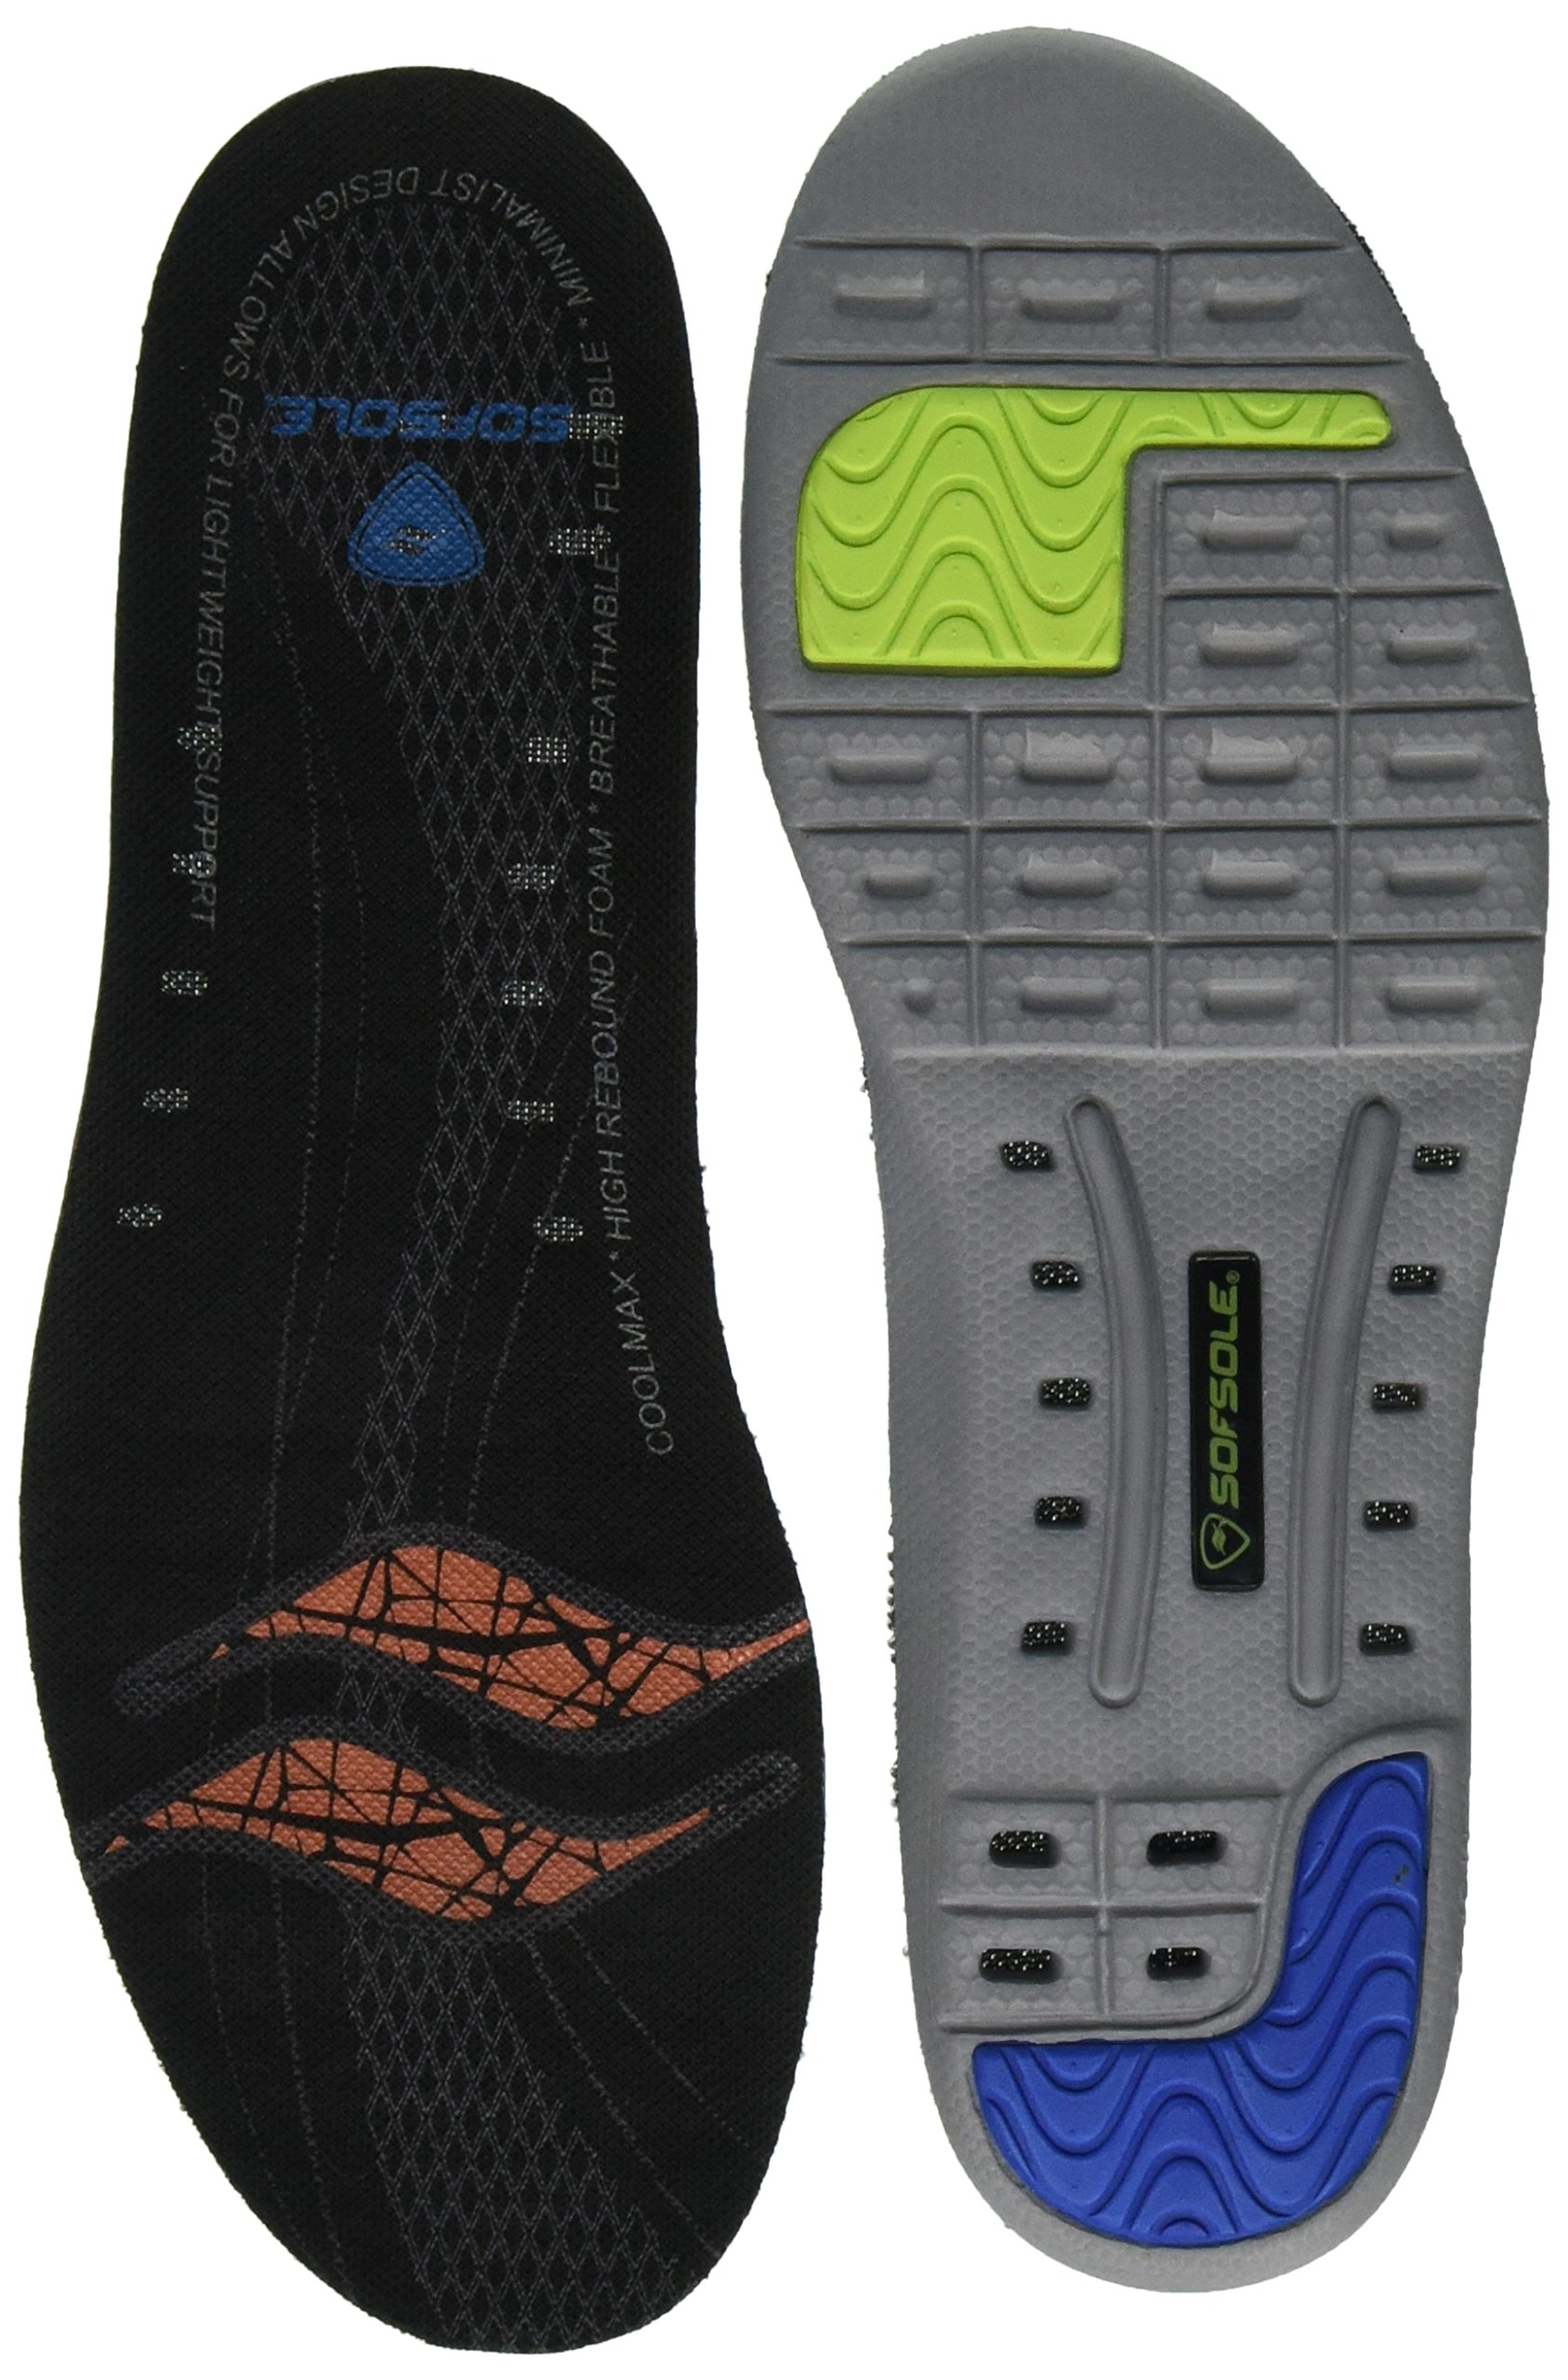 Sof Sole Thin Fit Lightweight Performance Insole, Women's Size 5-7.5